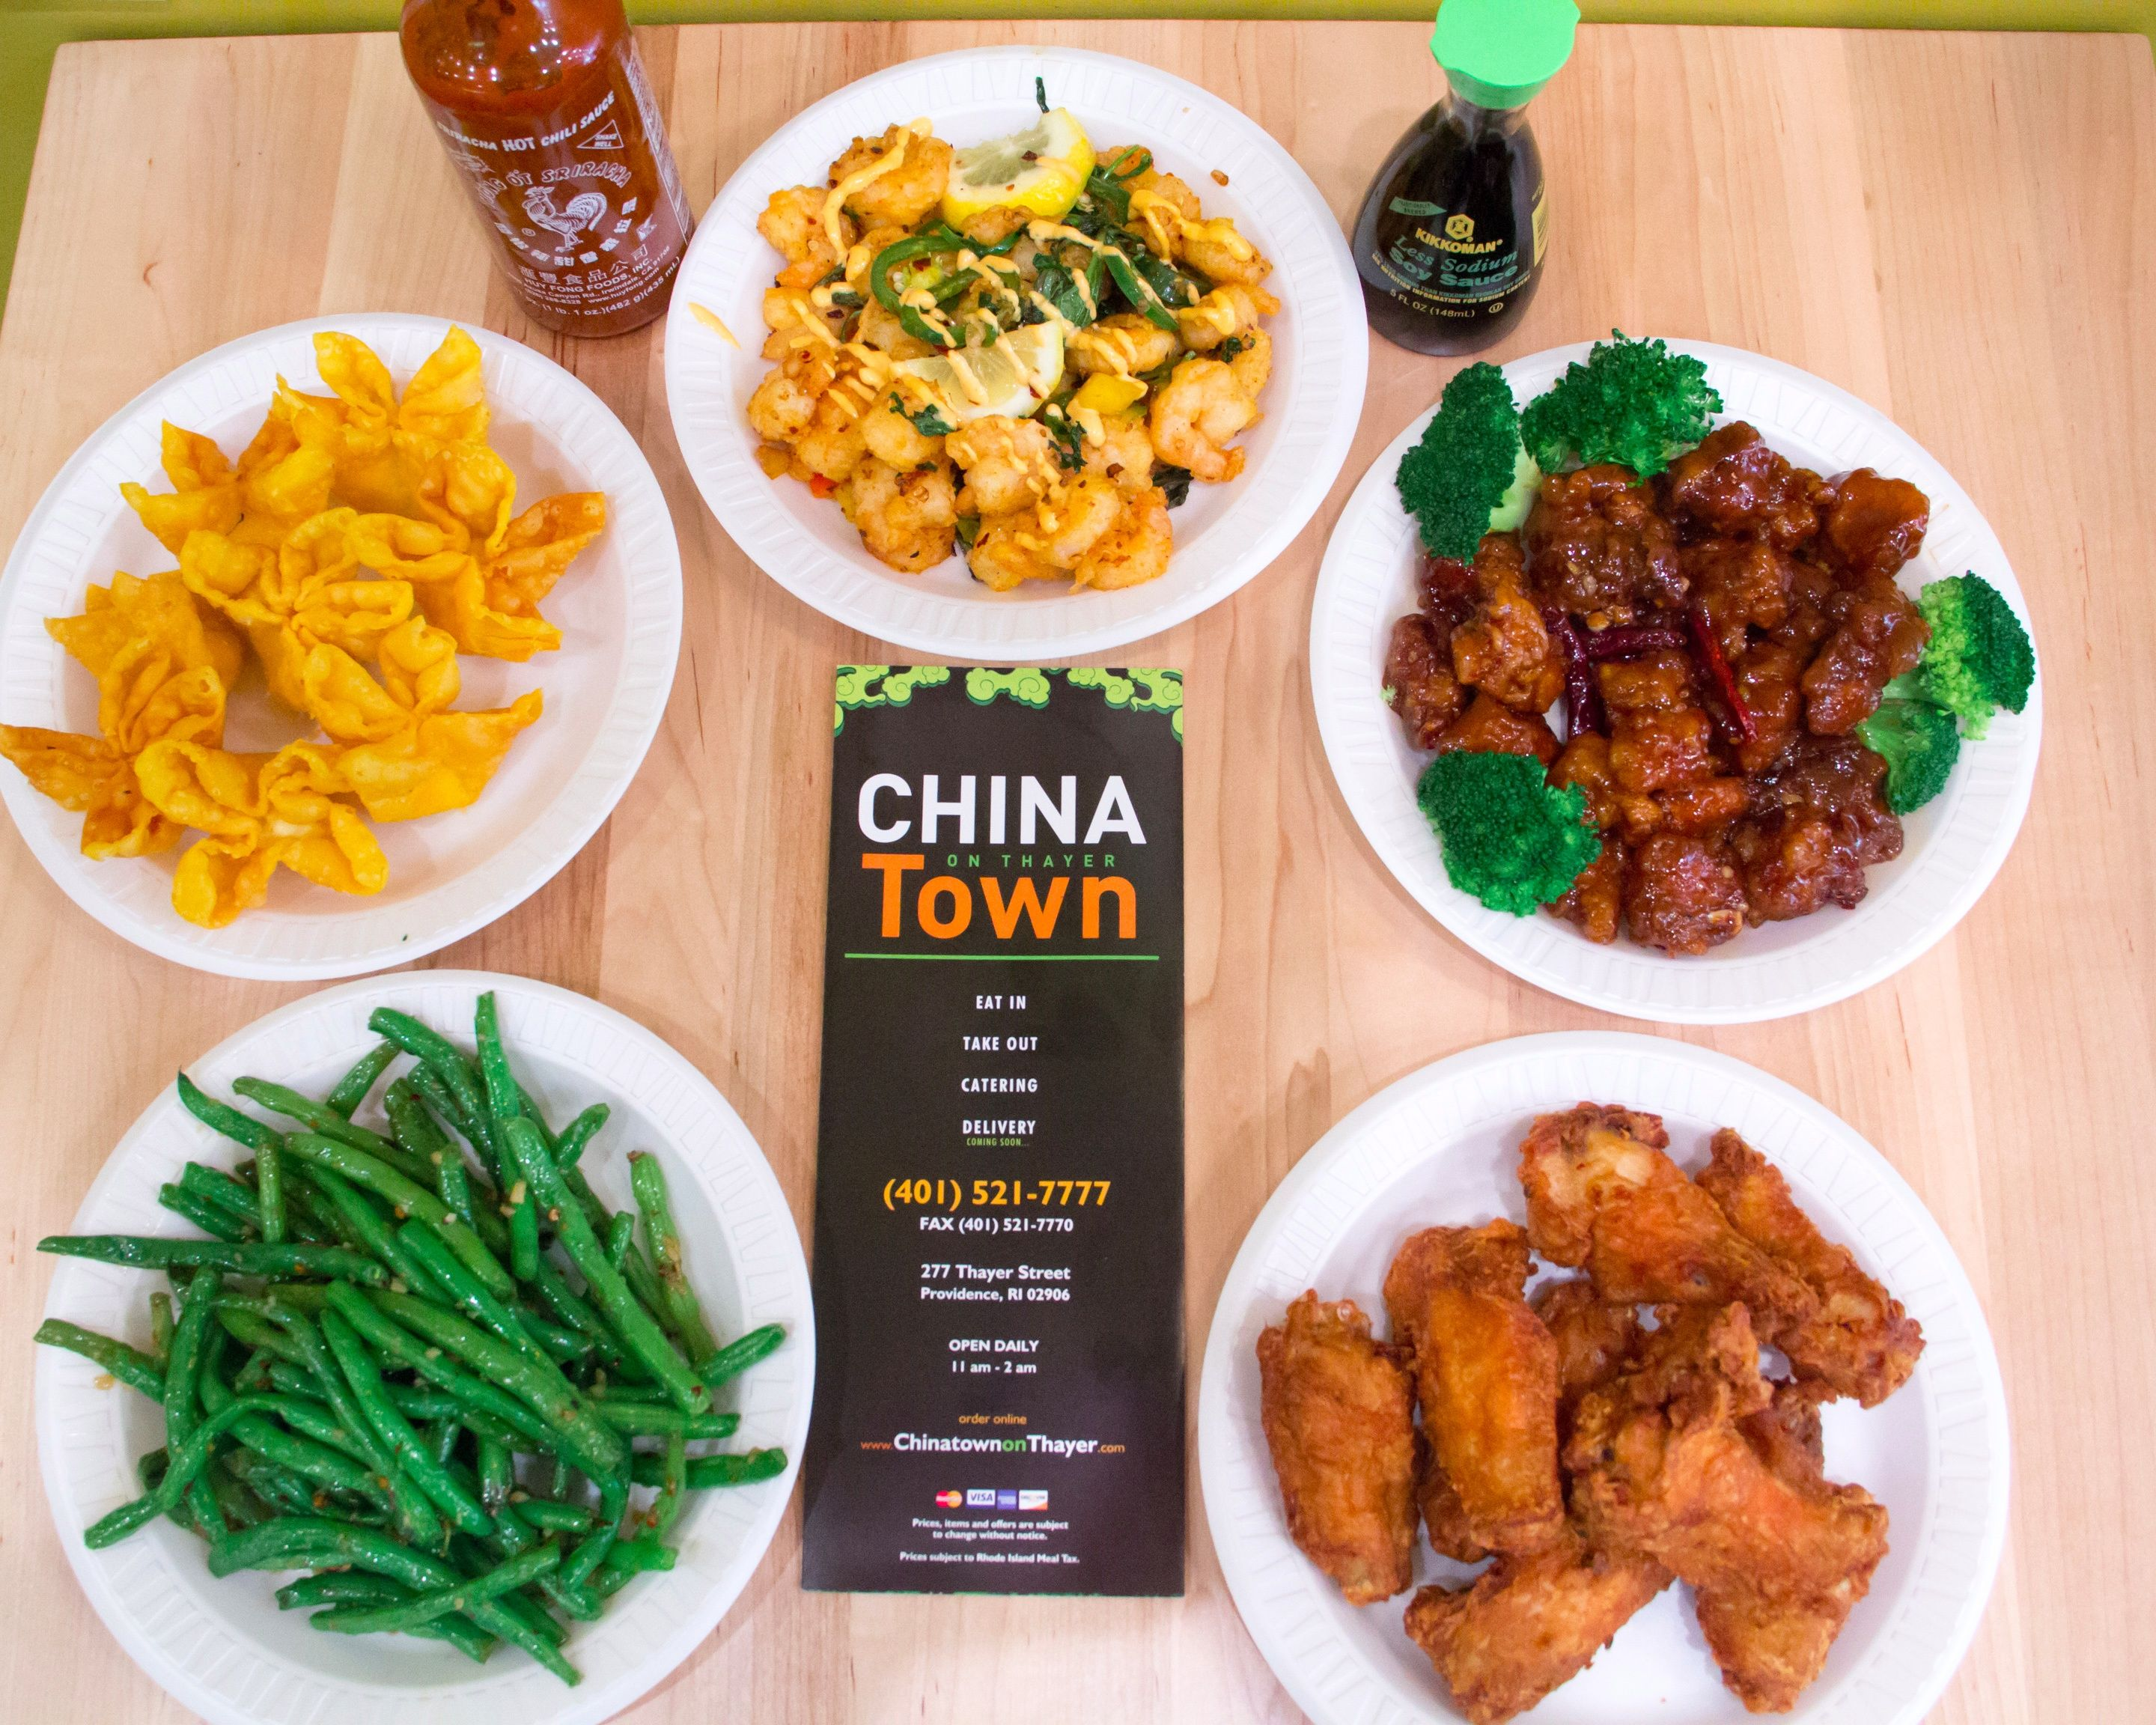 Chinatown On Thayer Delivery Providence Uber Eats